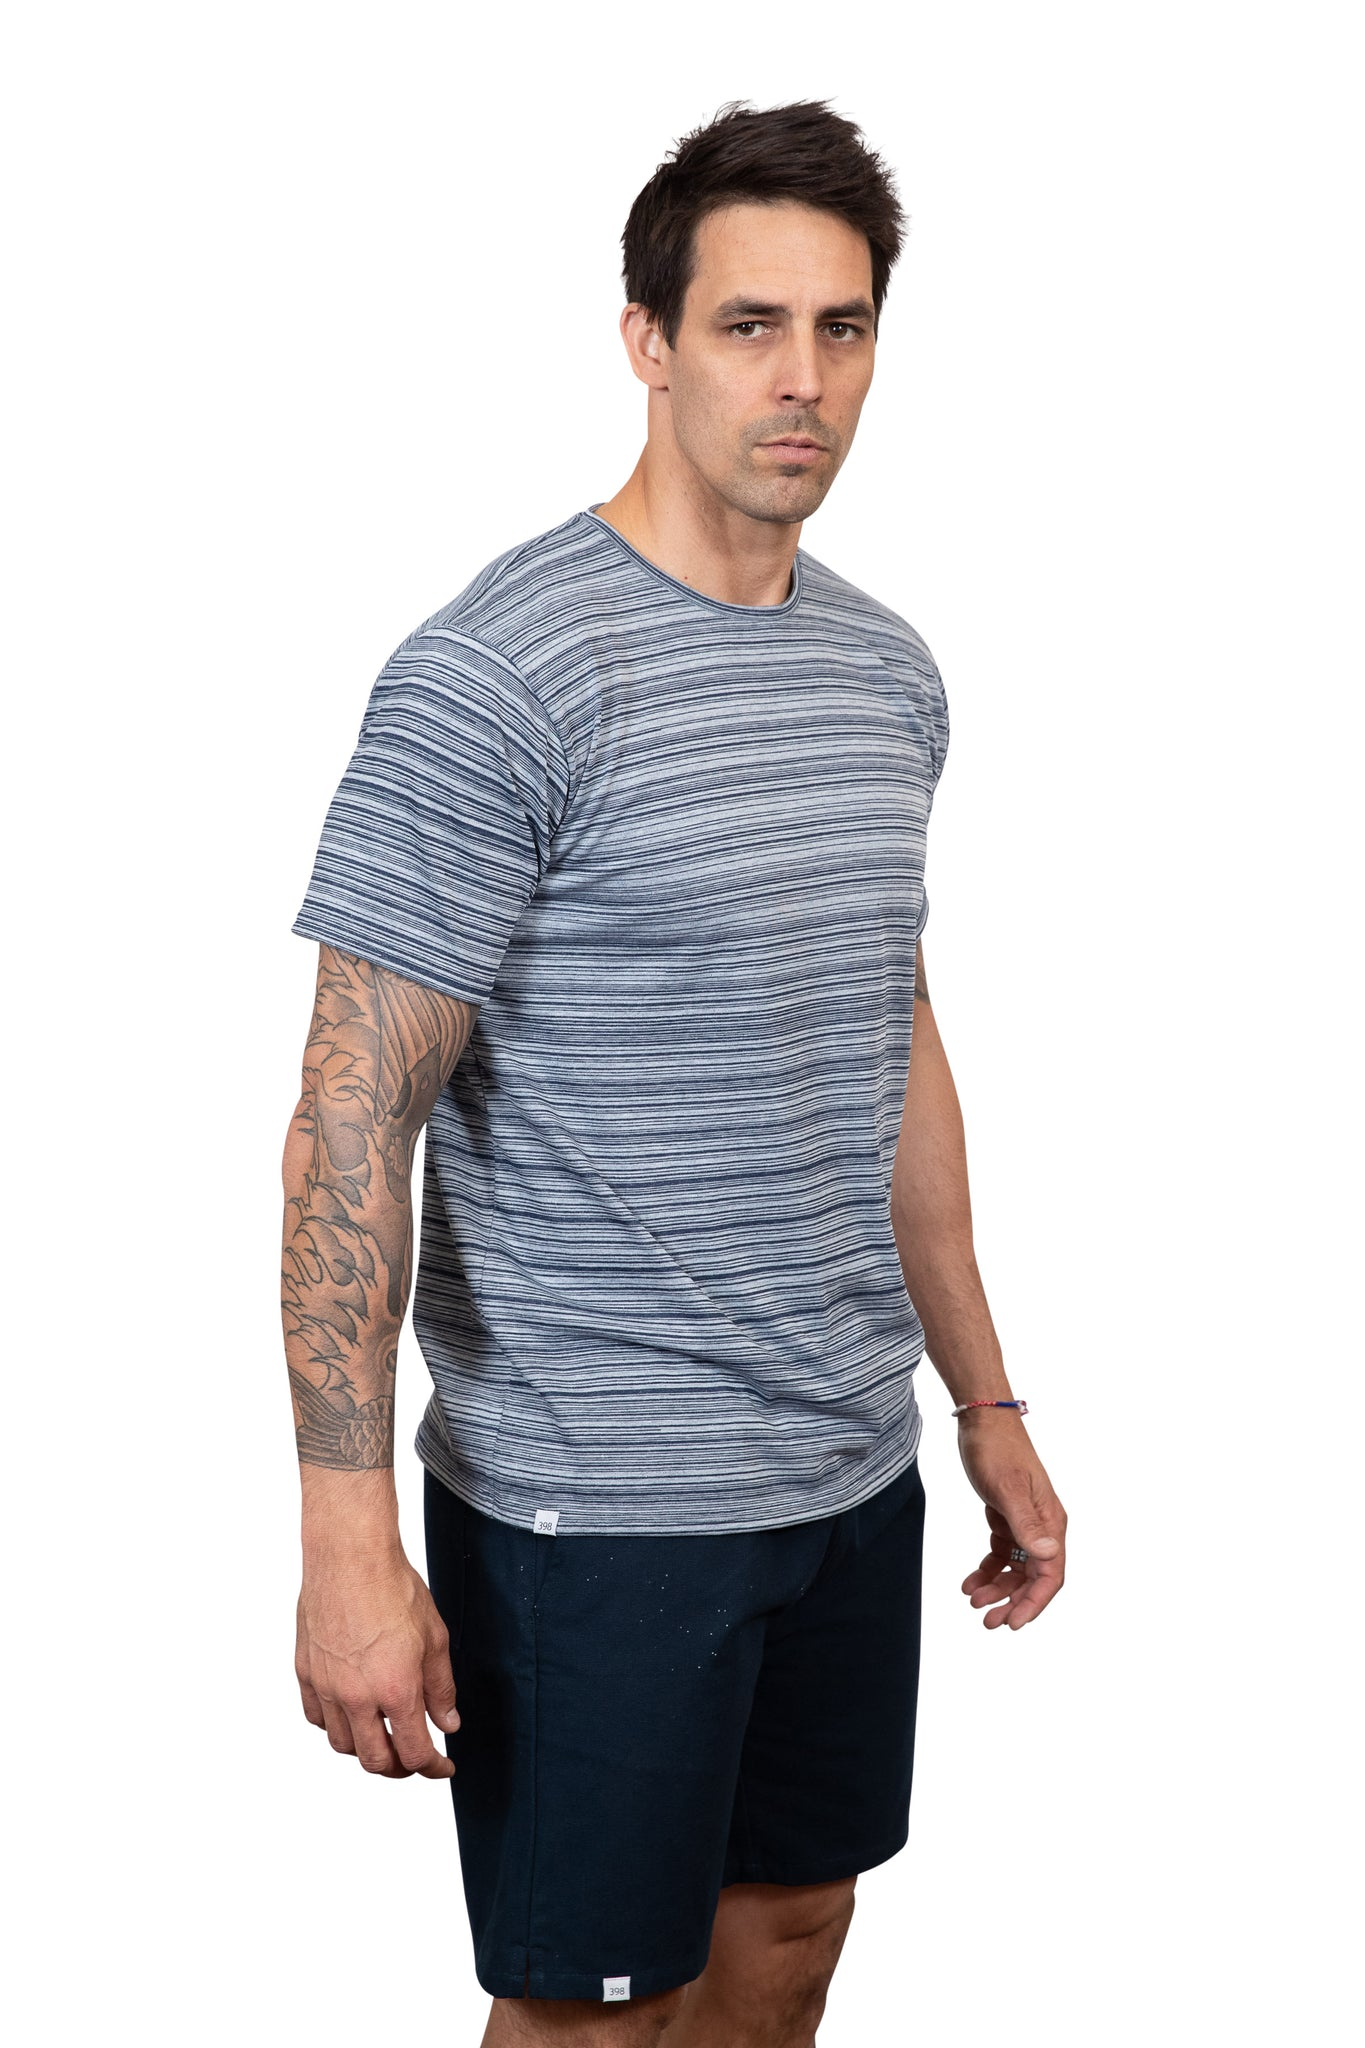 KINN 398 Collection Short sleeved round neck tee shirt